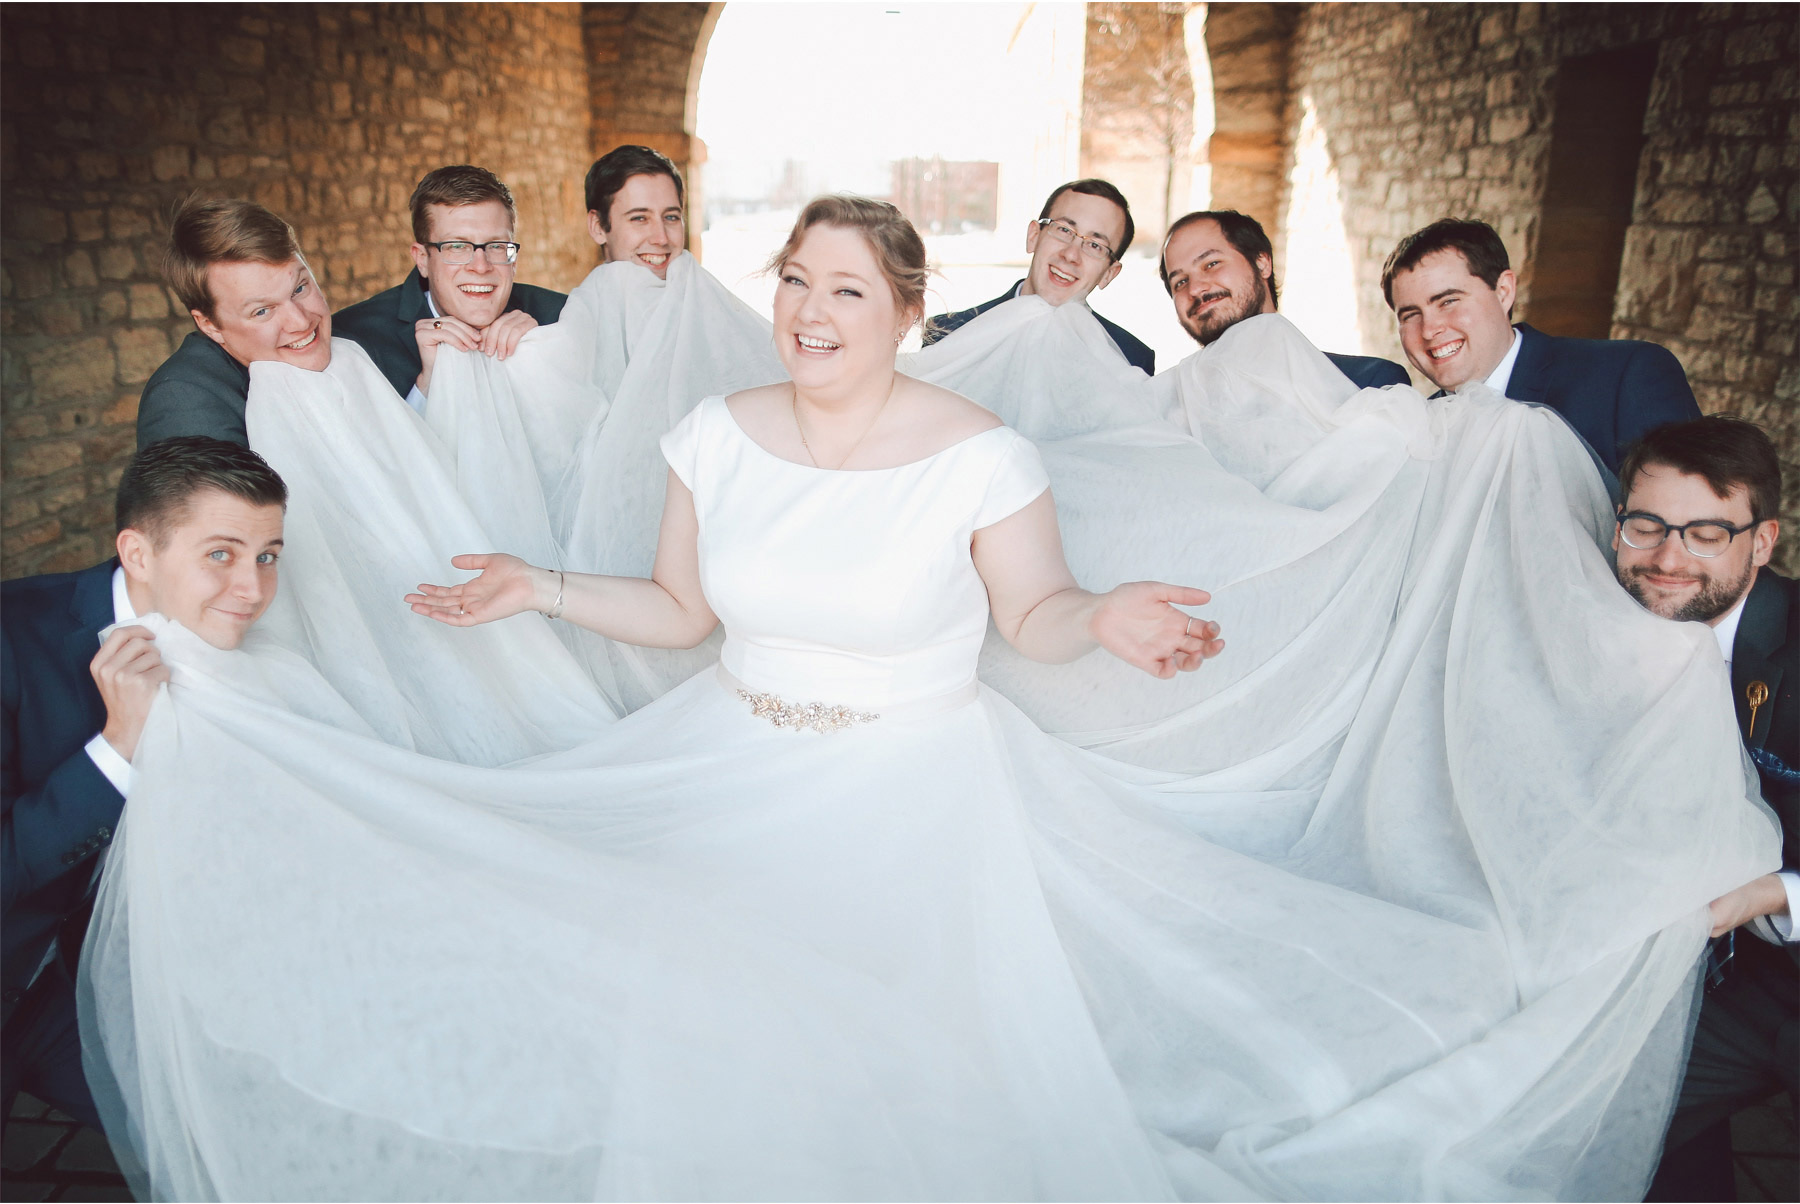 08-Minneapolis-Wedding-Photography-by-Vick-Groomsmen-Dress-Group-Libby-and-Nathan.jpg